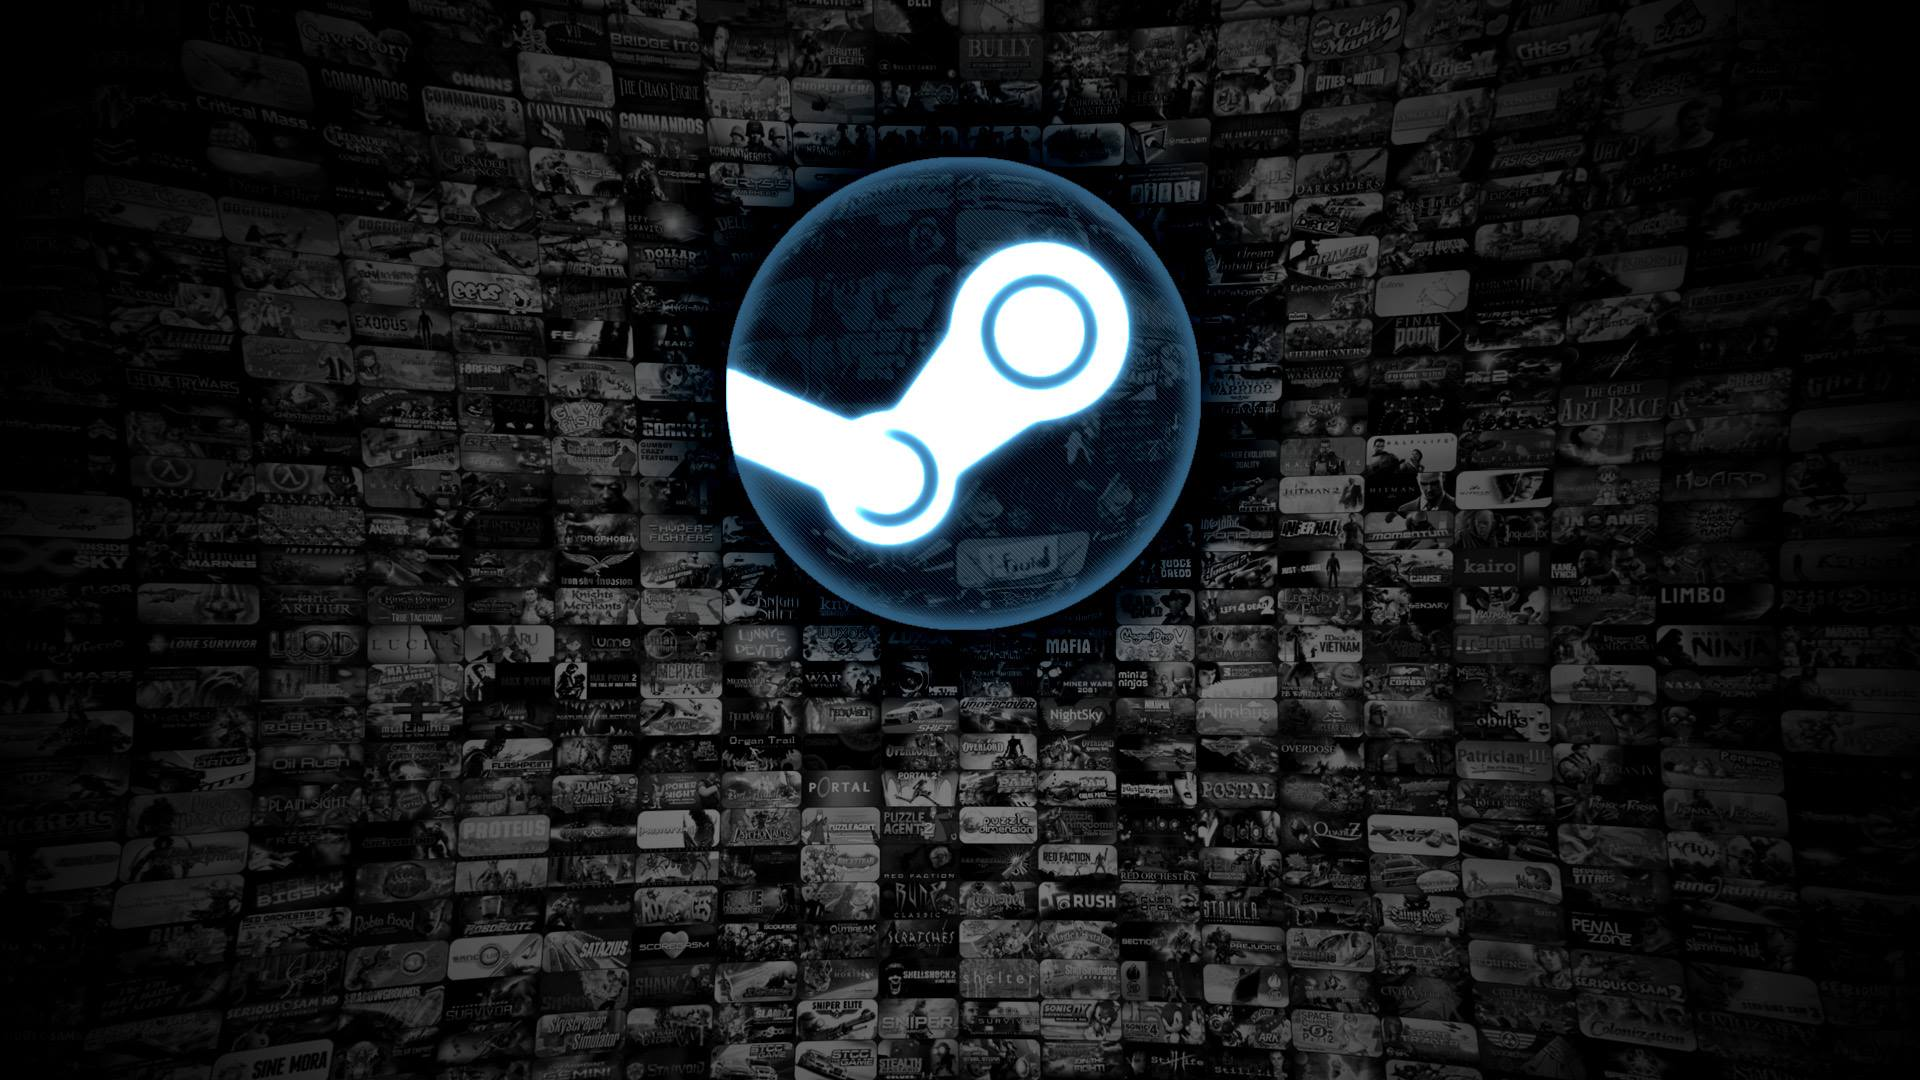 Valve Have Finally Explained What Happened To Steam On Christmas Day zg4ssyn8zjiphl0btlg0